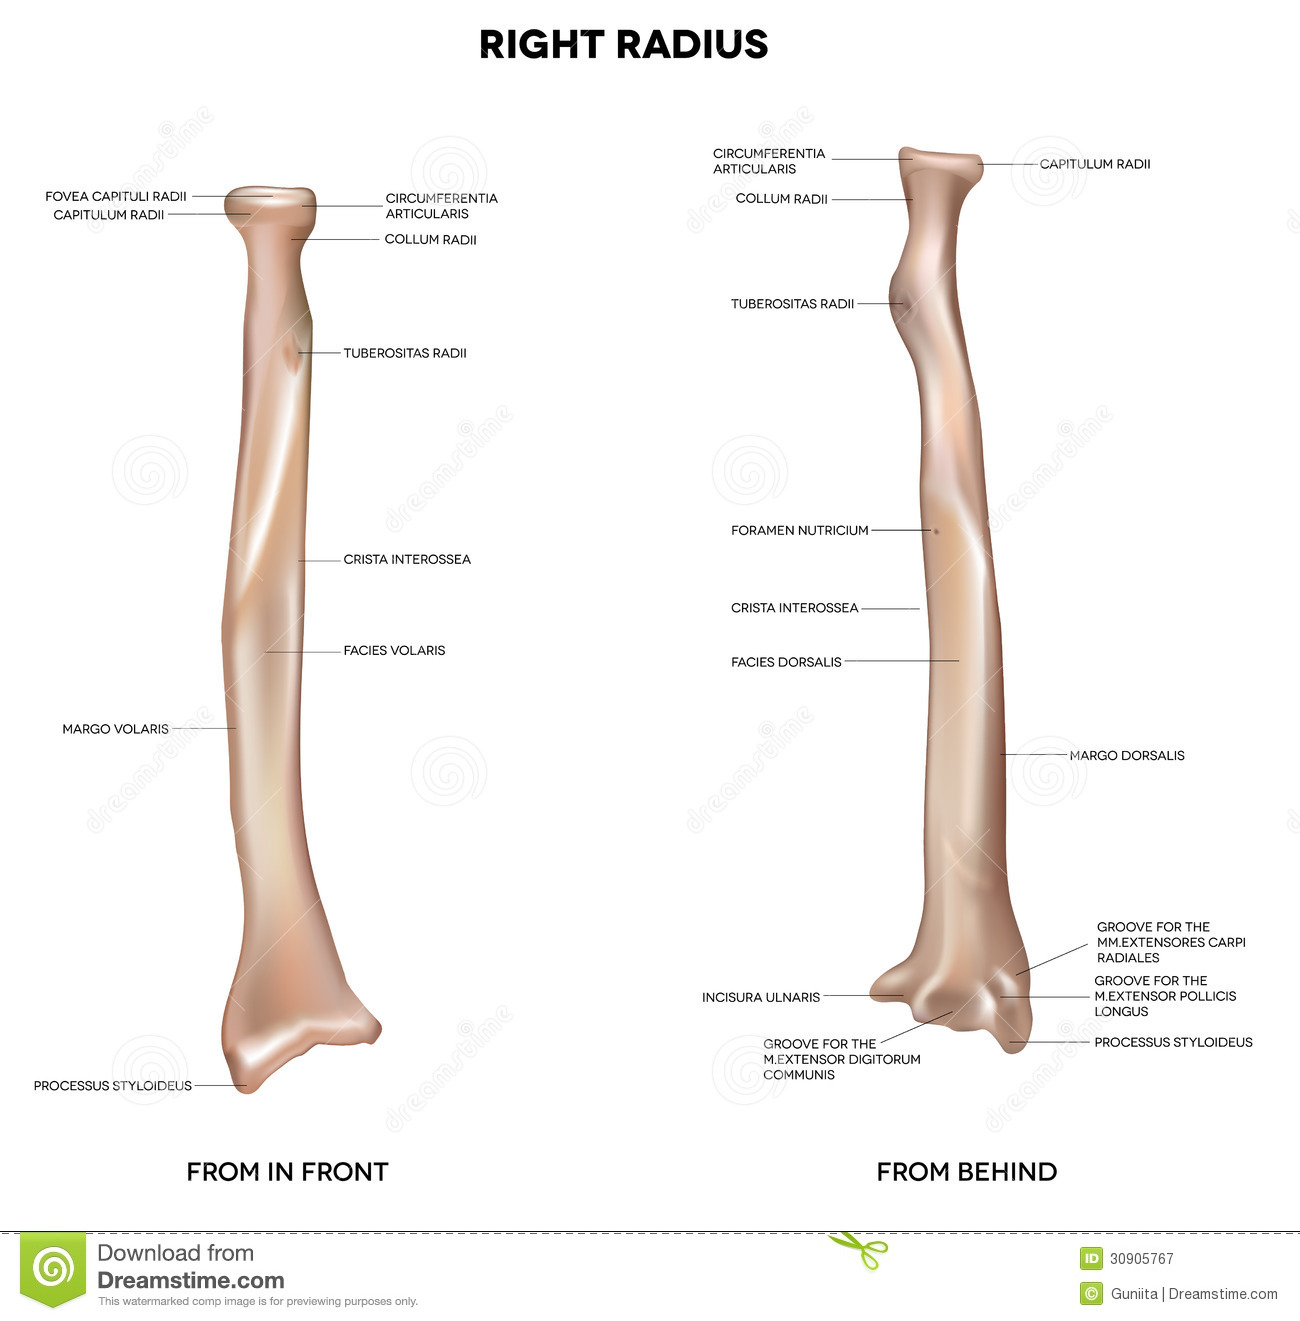 Radius. Human right radius, bone. Detailed medical illustration. Latin